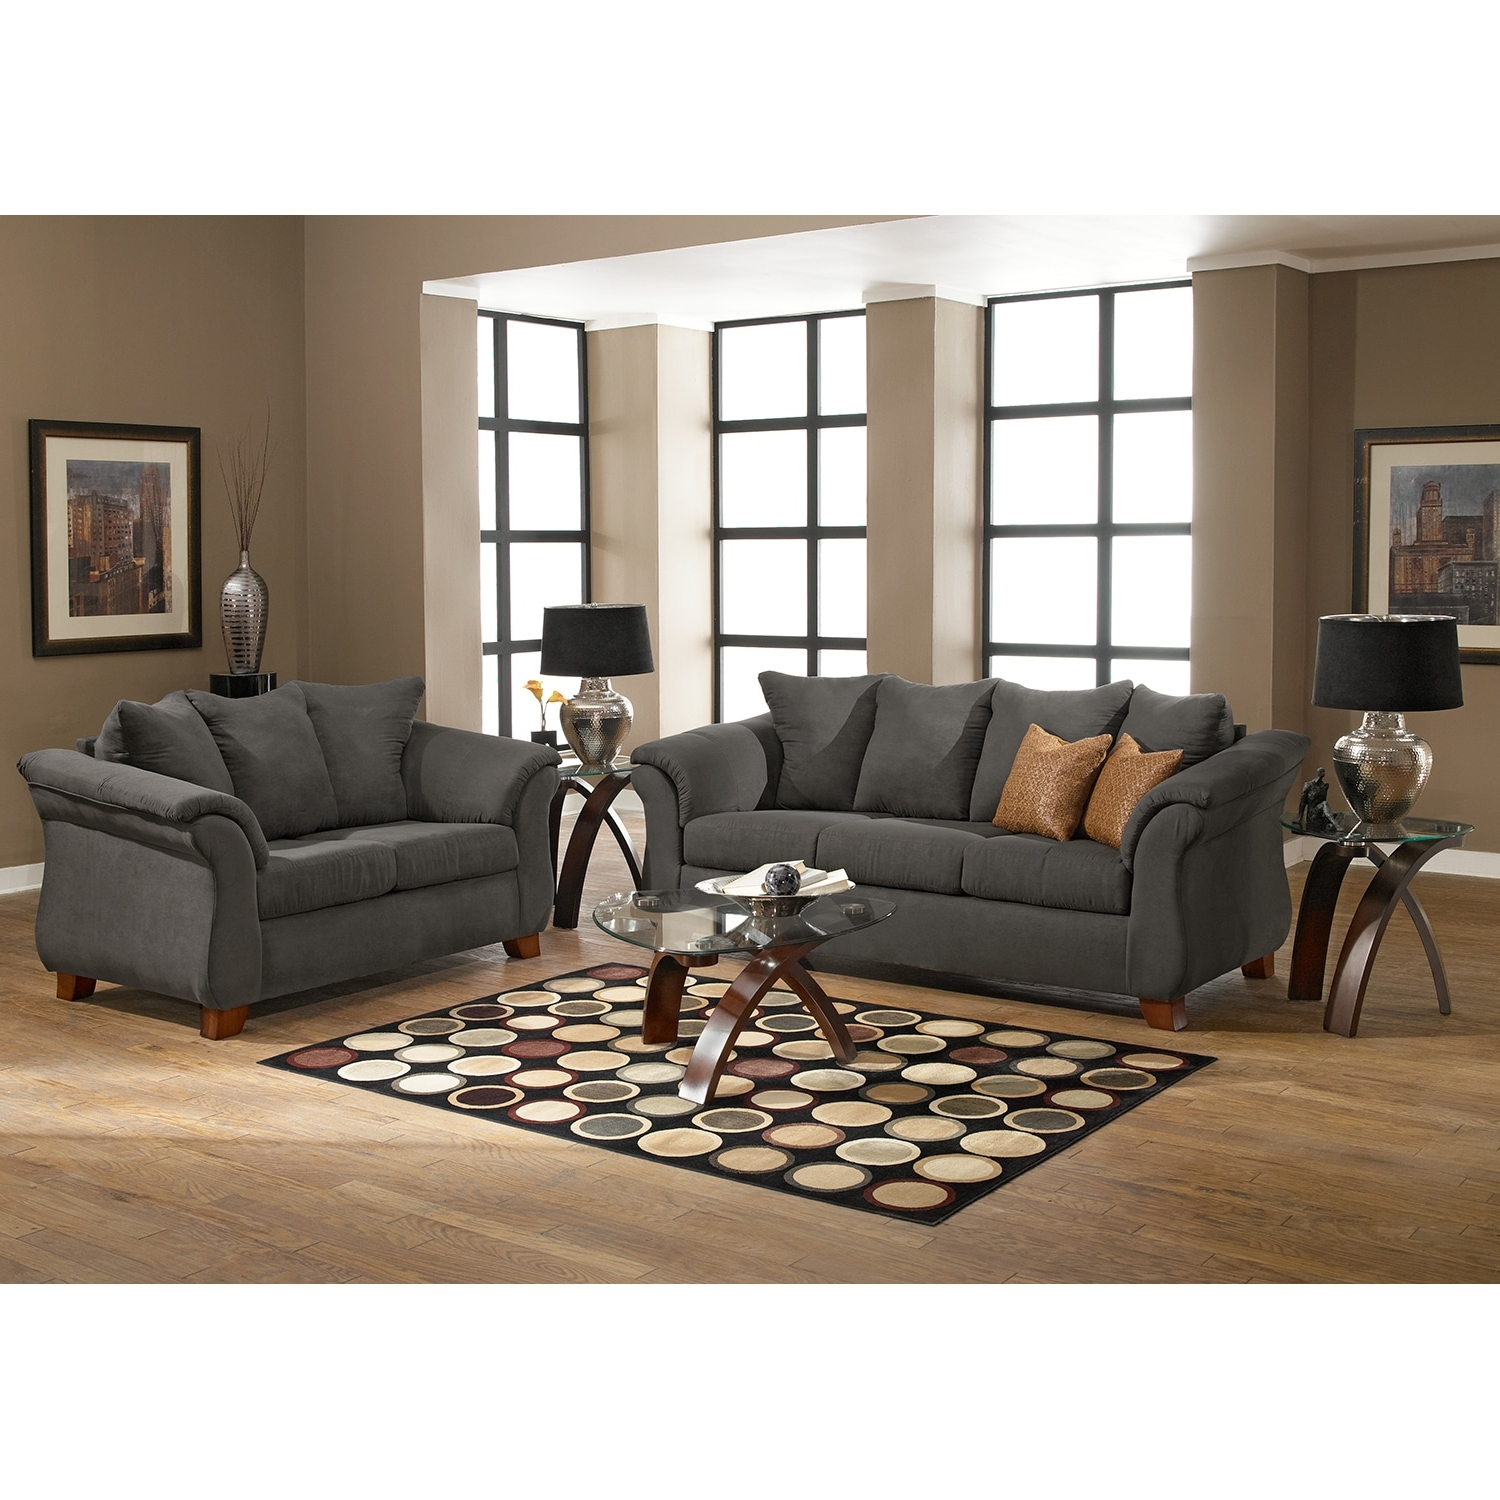 Adrian Sofa And Loveseat Set (Gallery 1 of 20)